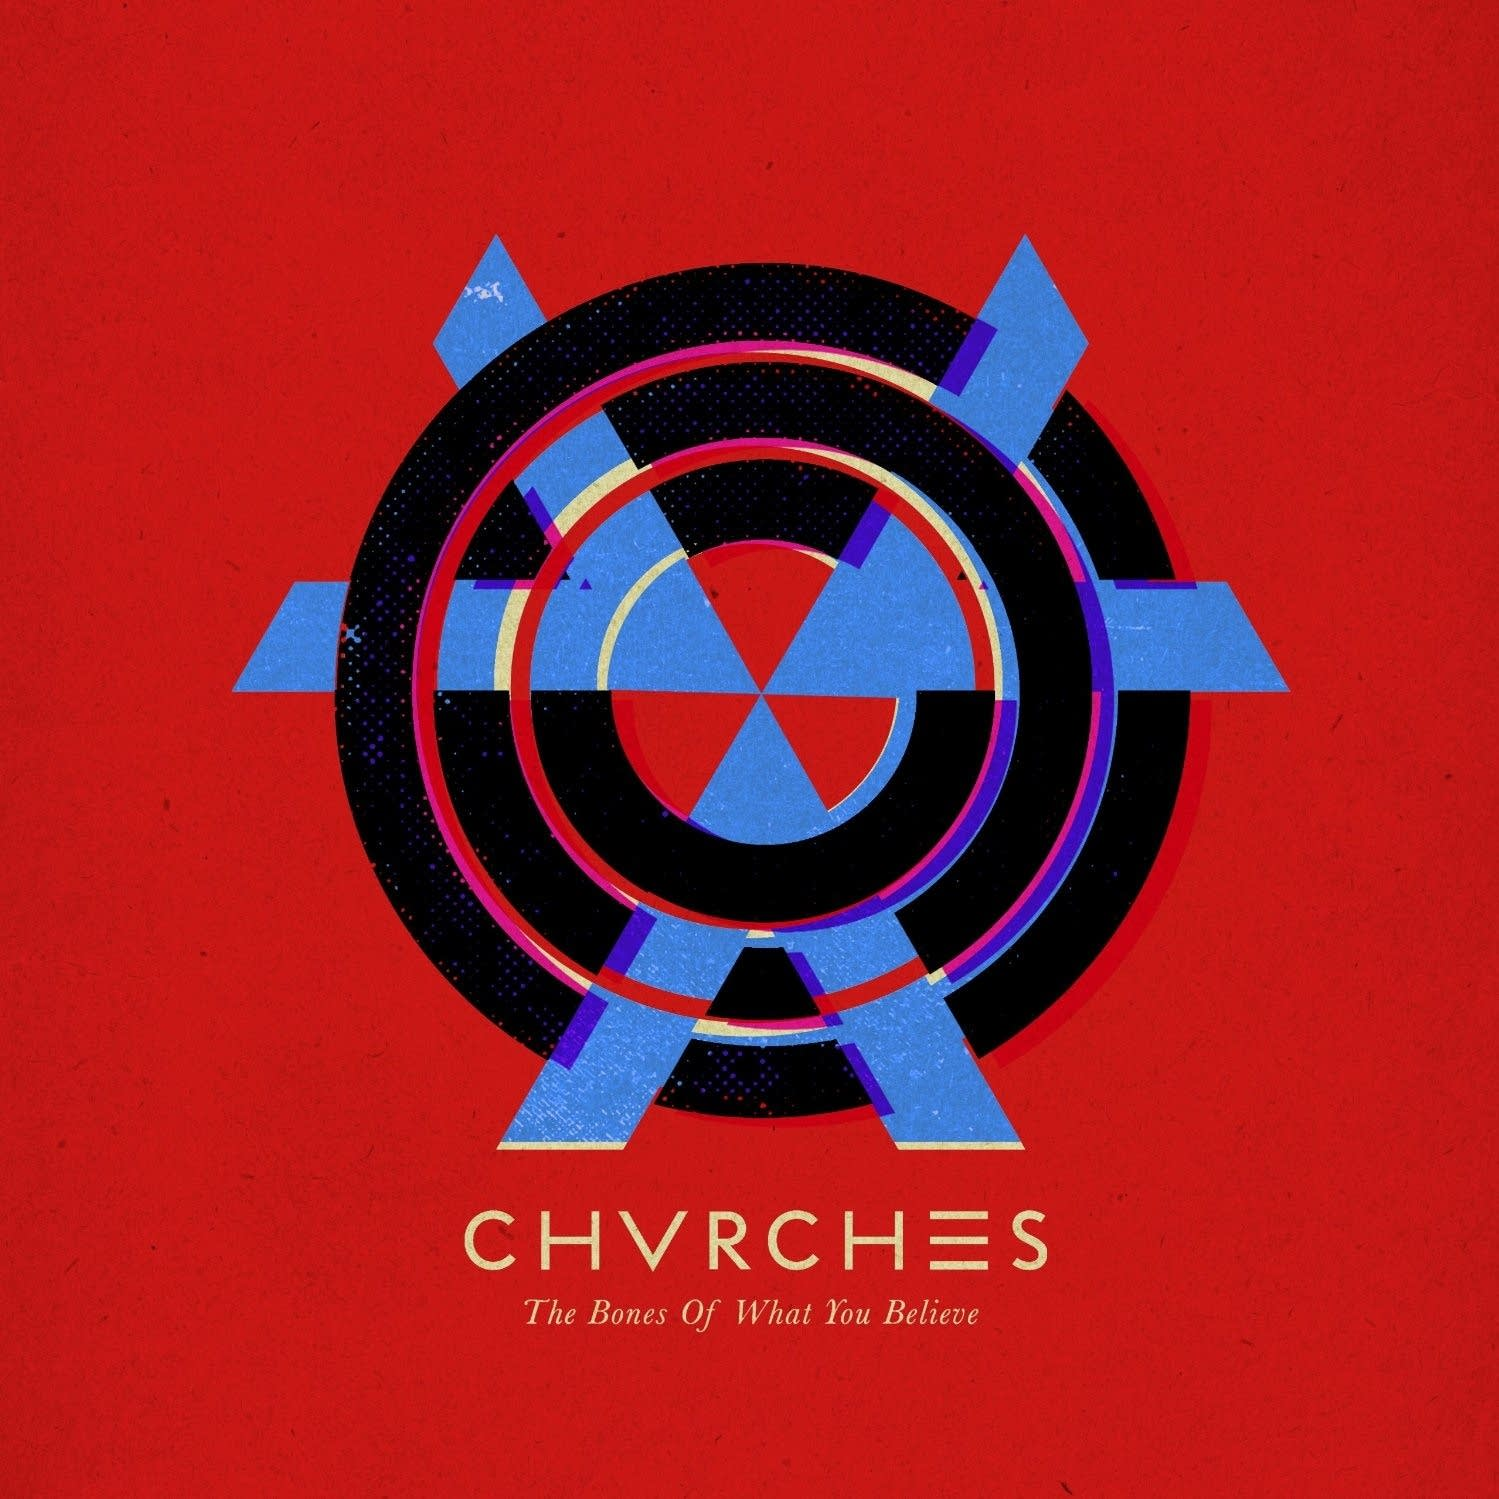 chvrches, the bones of what you believe